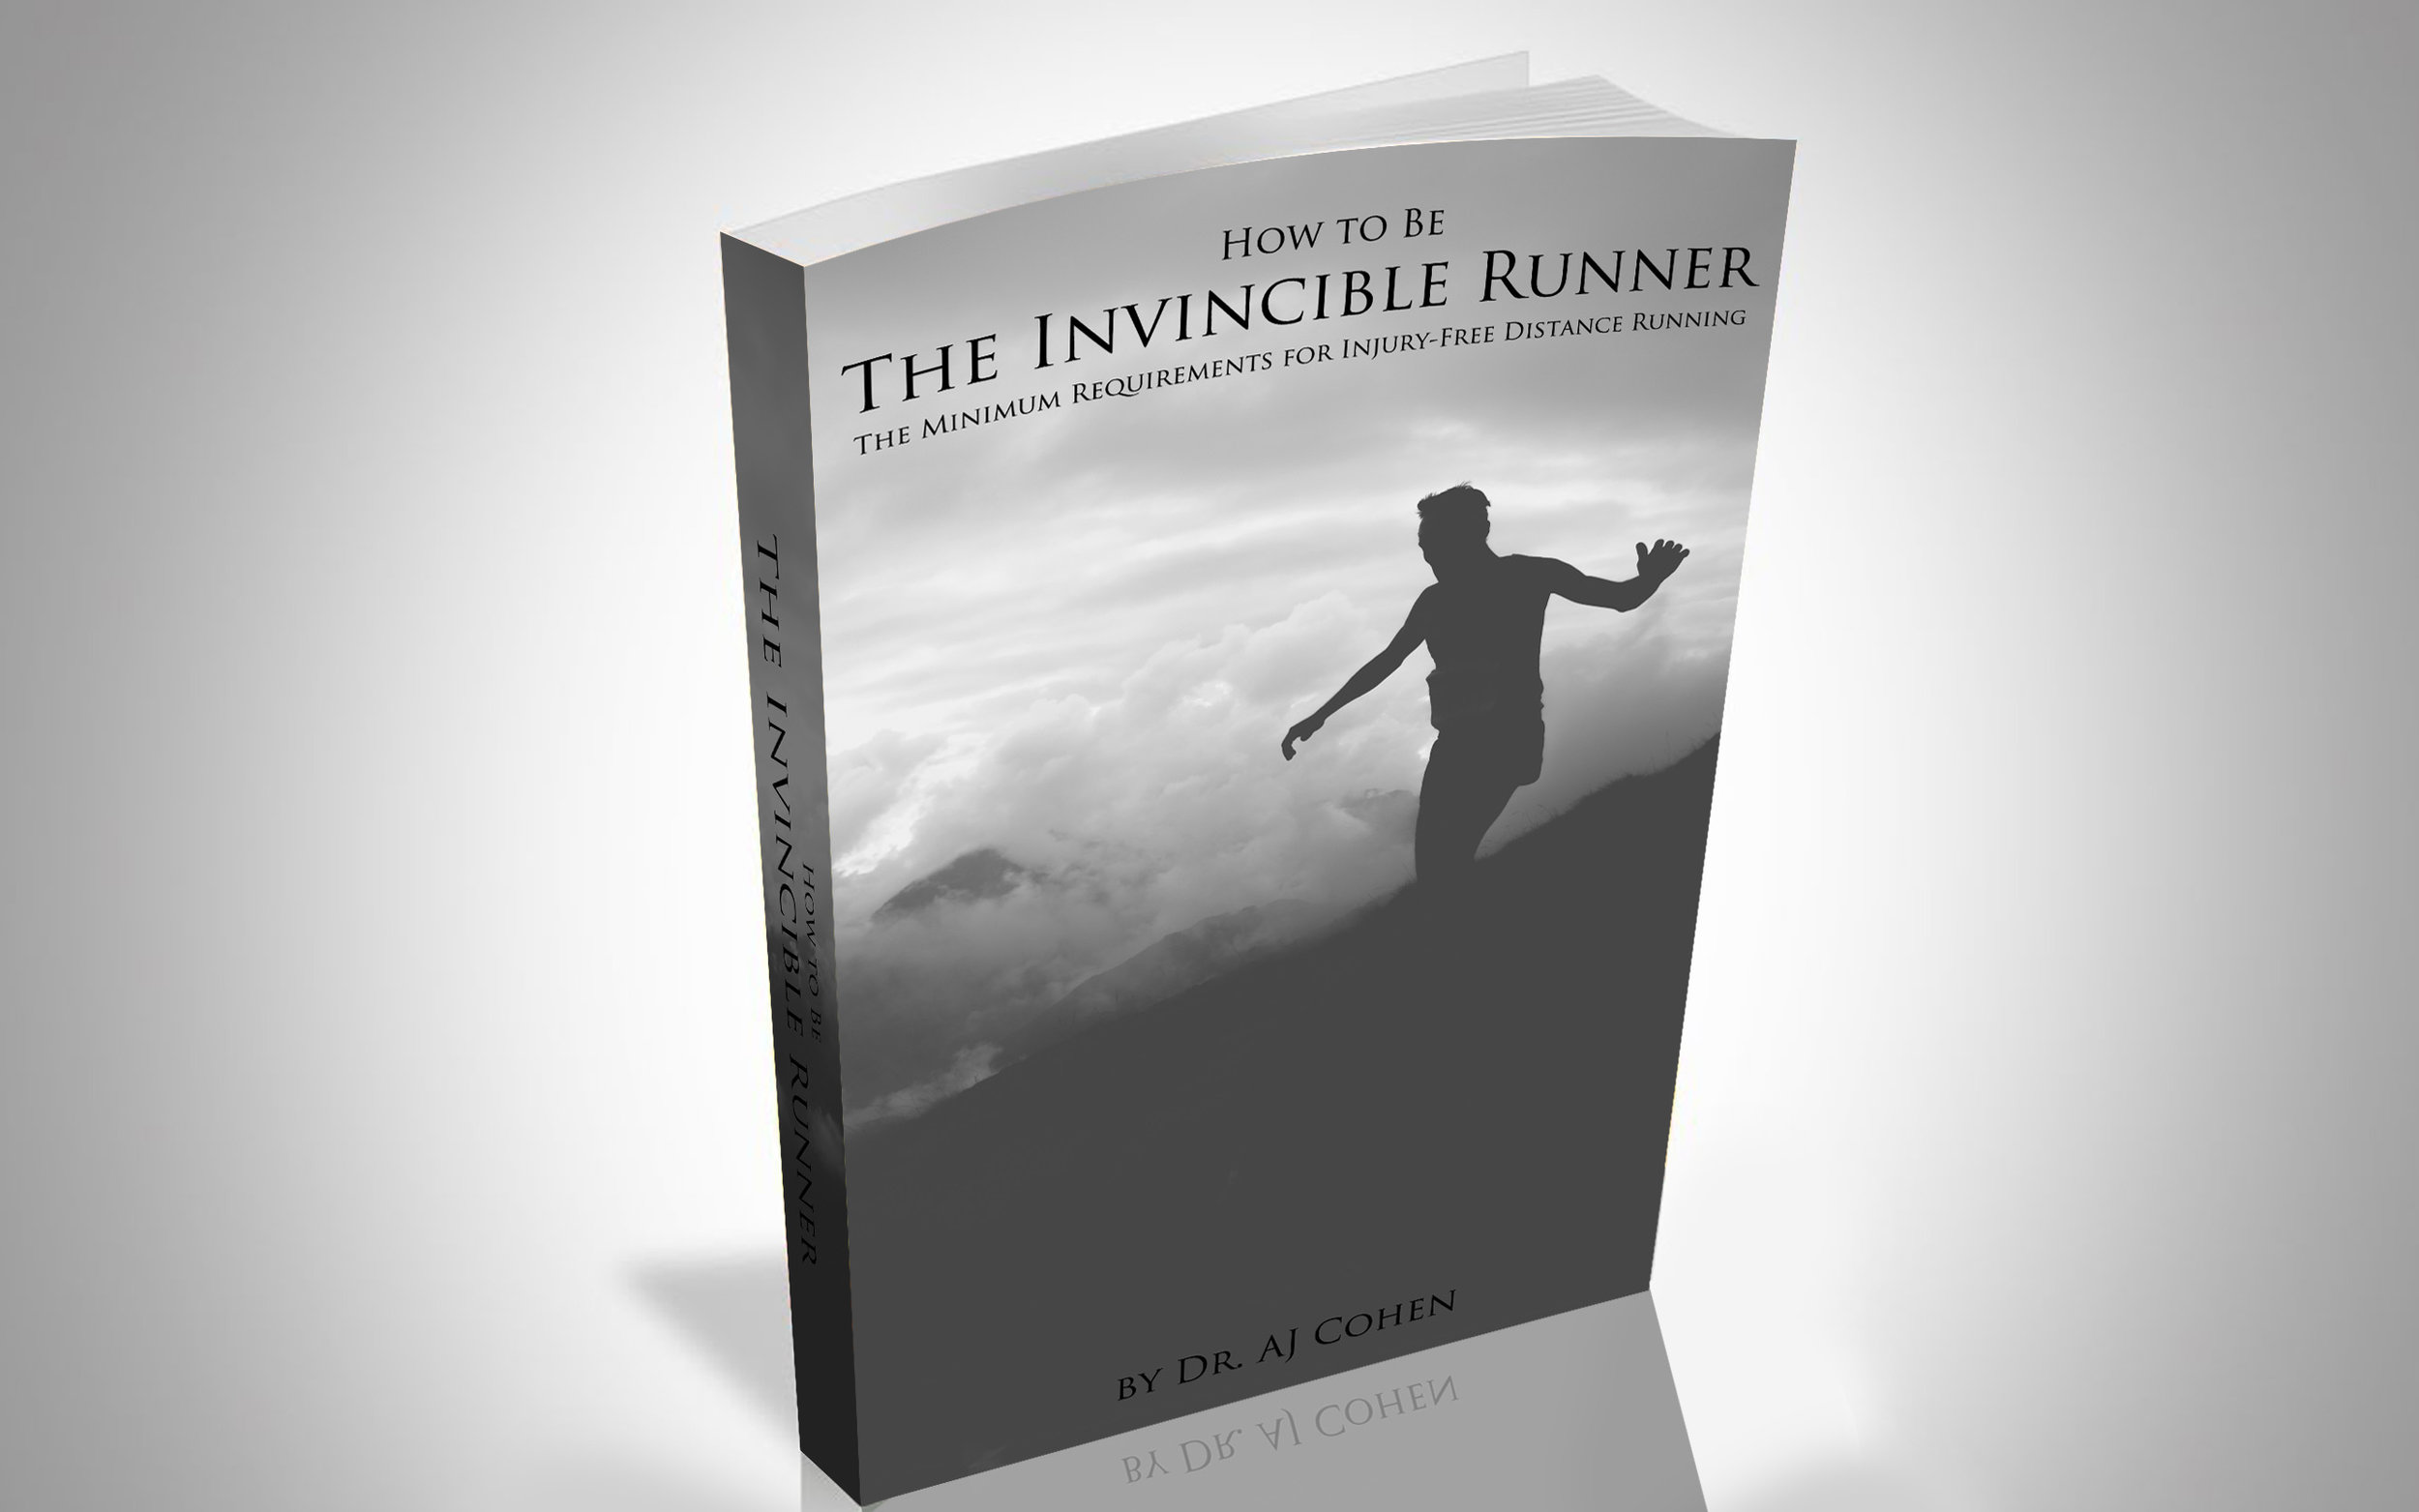 How to Be The Invincible Runner: - The Minimum Requirements for Injury Free Distance Running